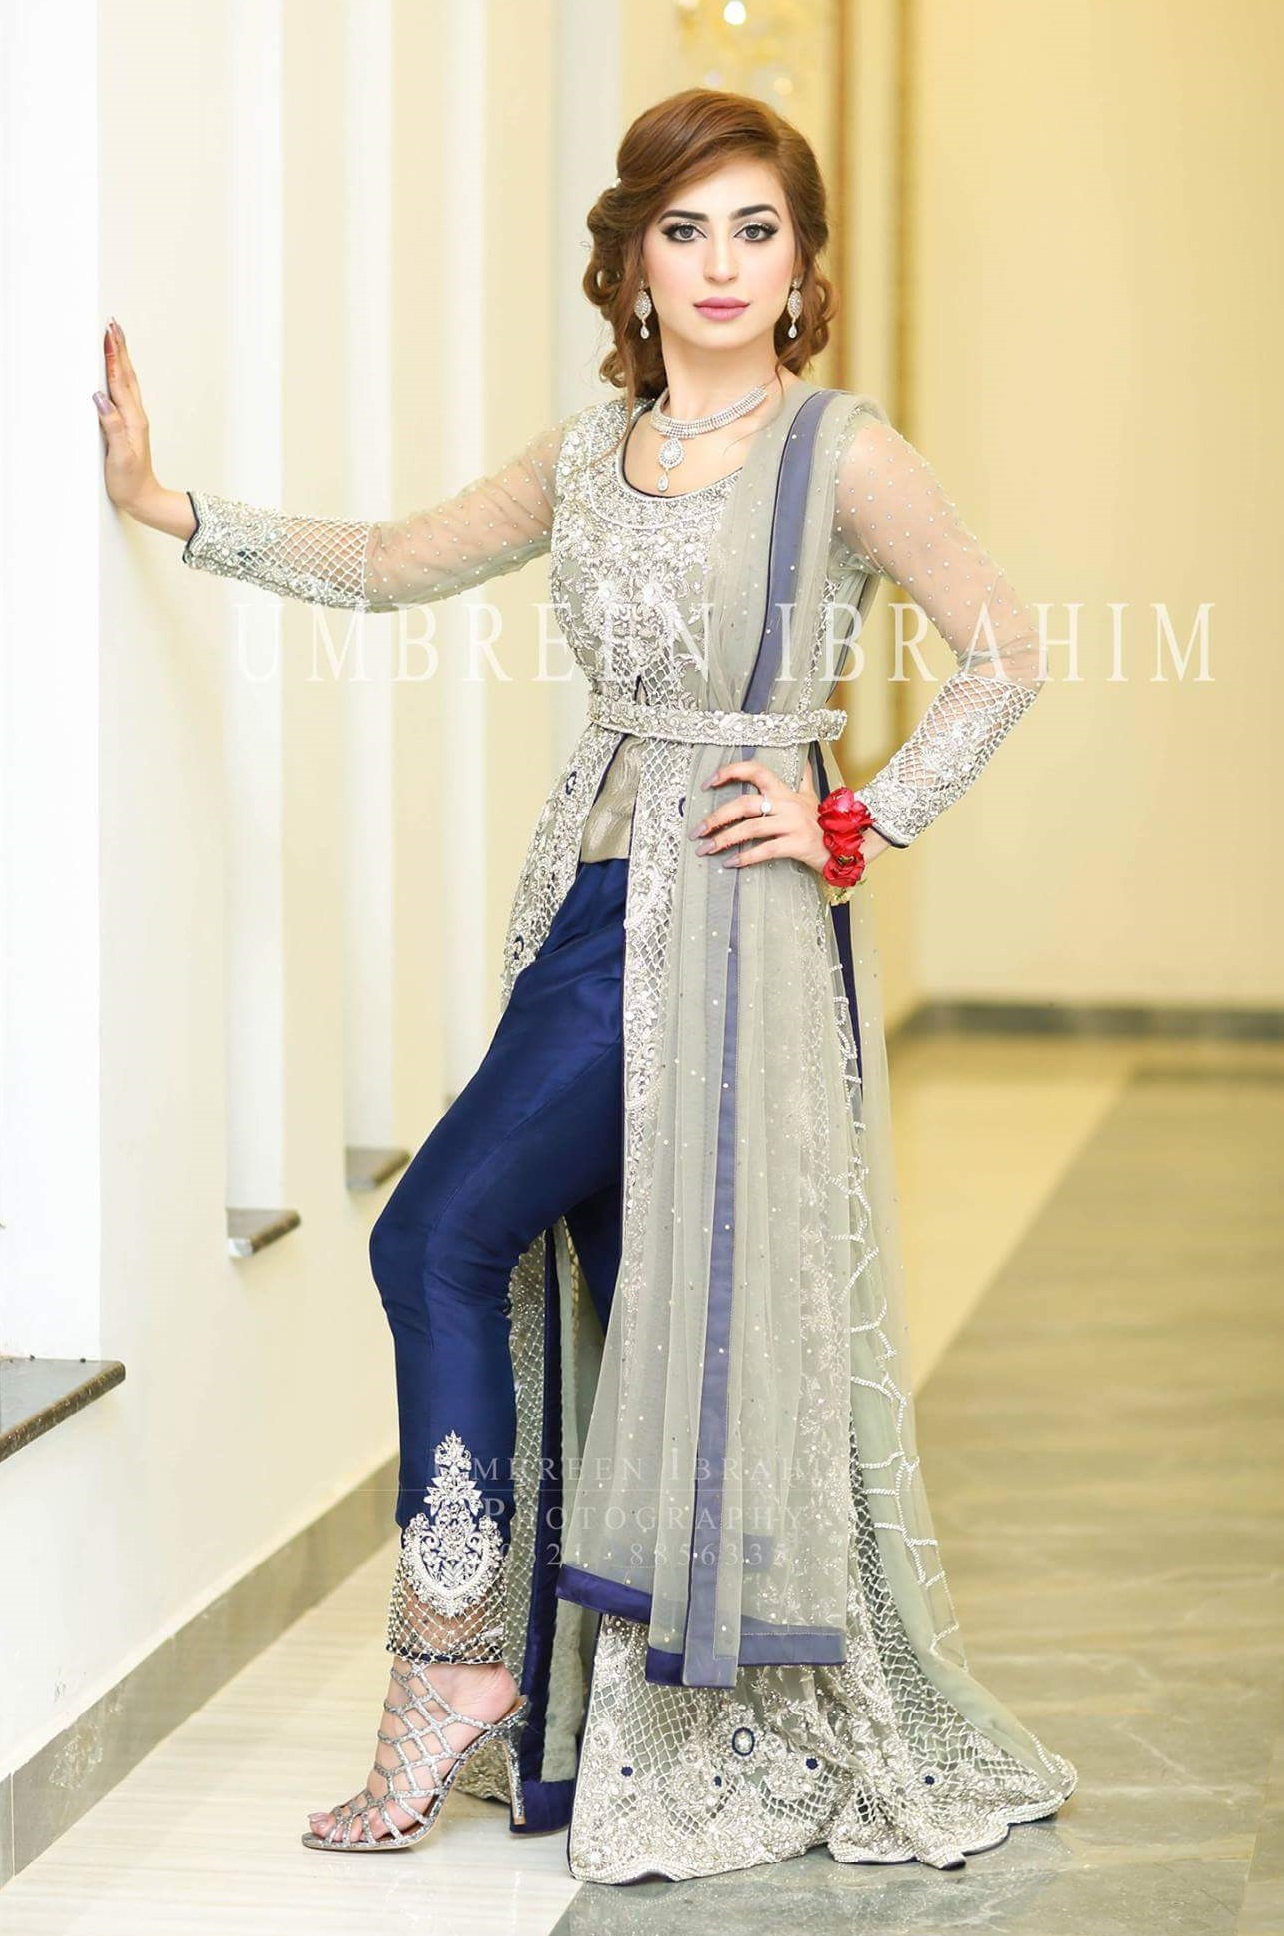 Pakistani Waist Belt Dresses Designs For Women Formal Wear